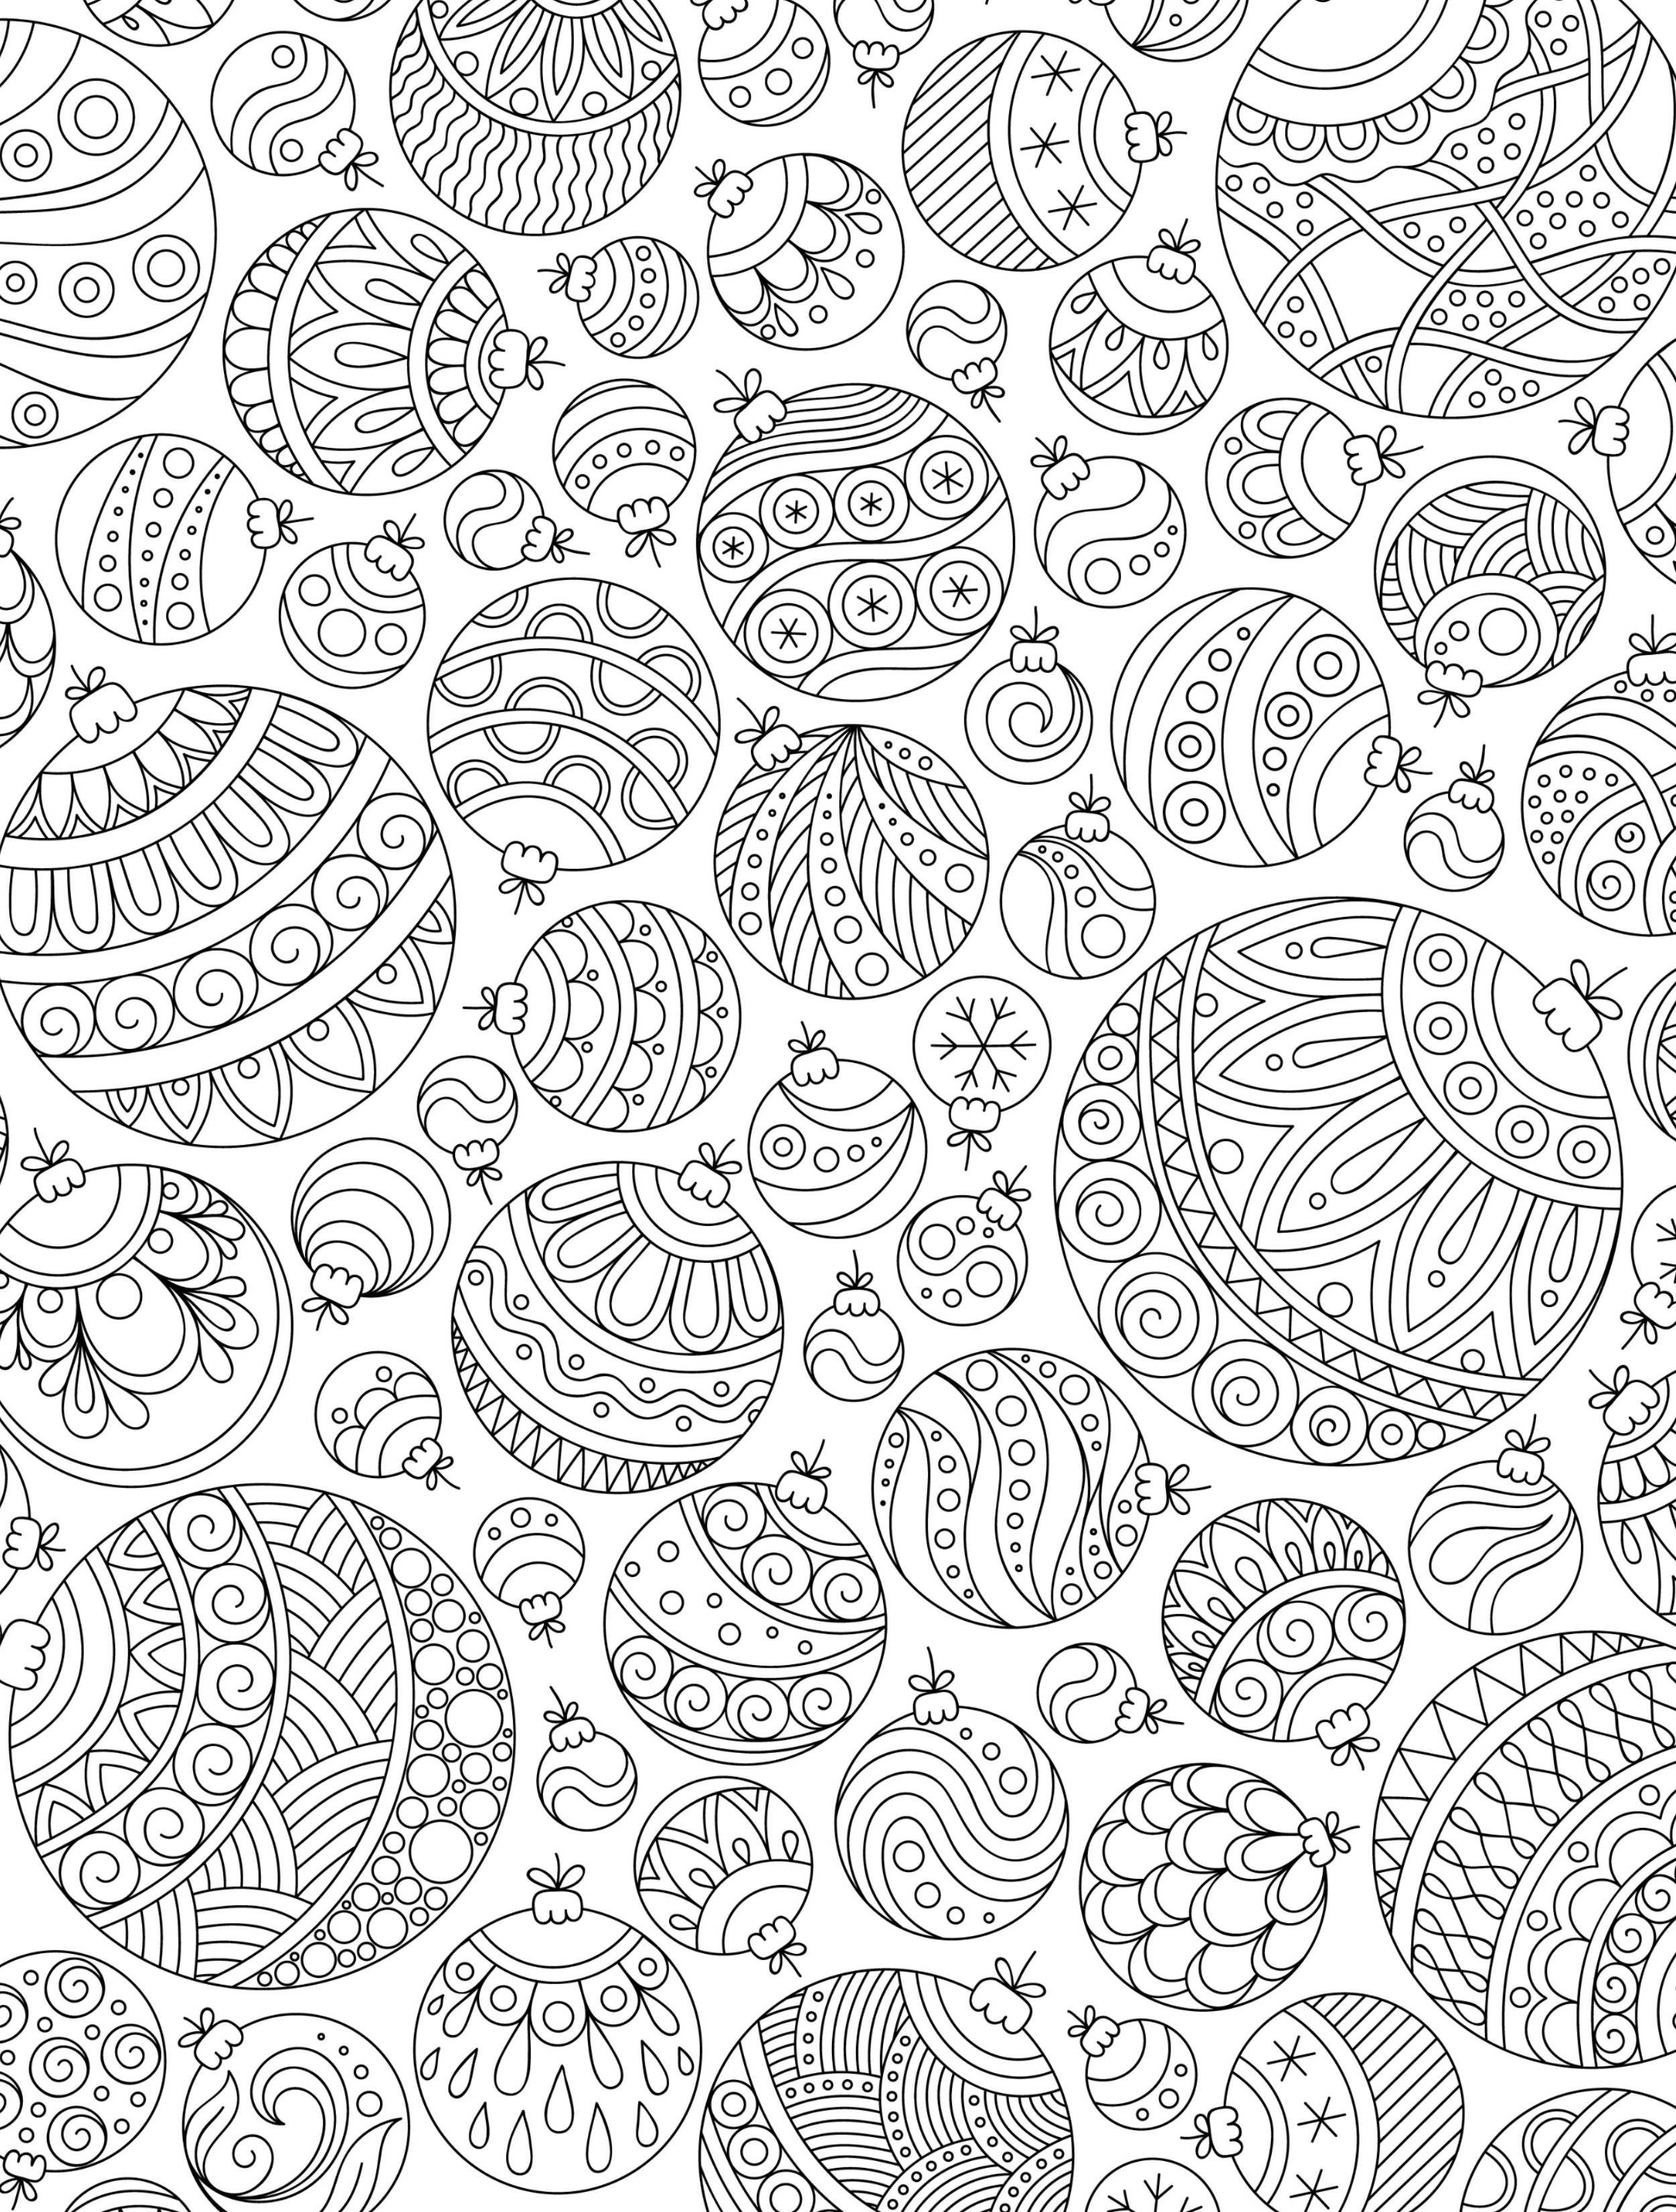 15 crazy busy coloring pages for adults page 11 of 16 free